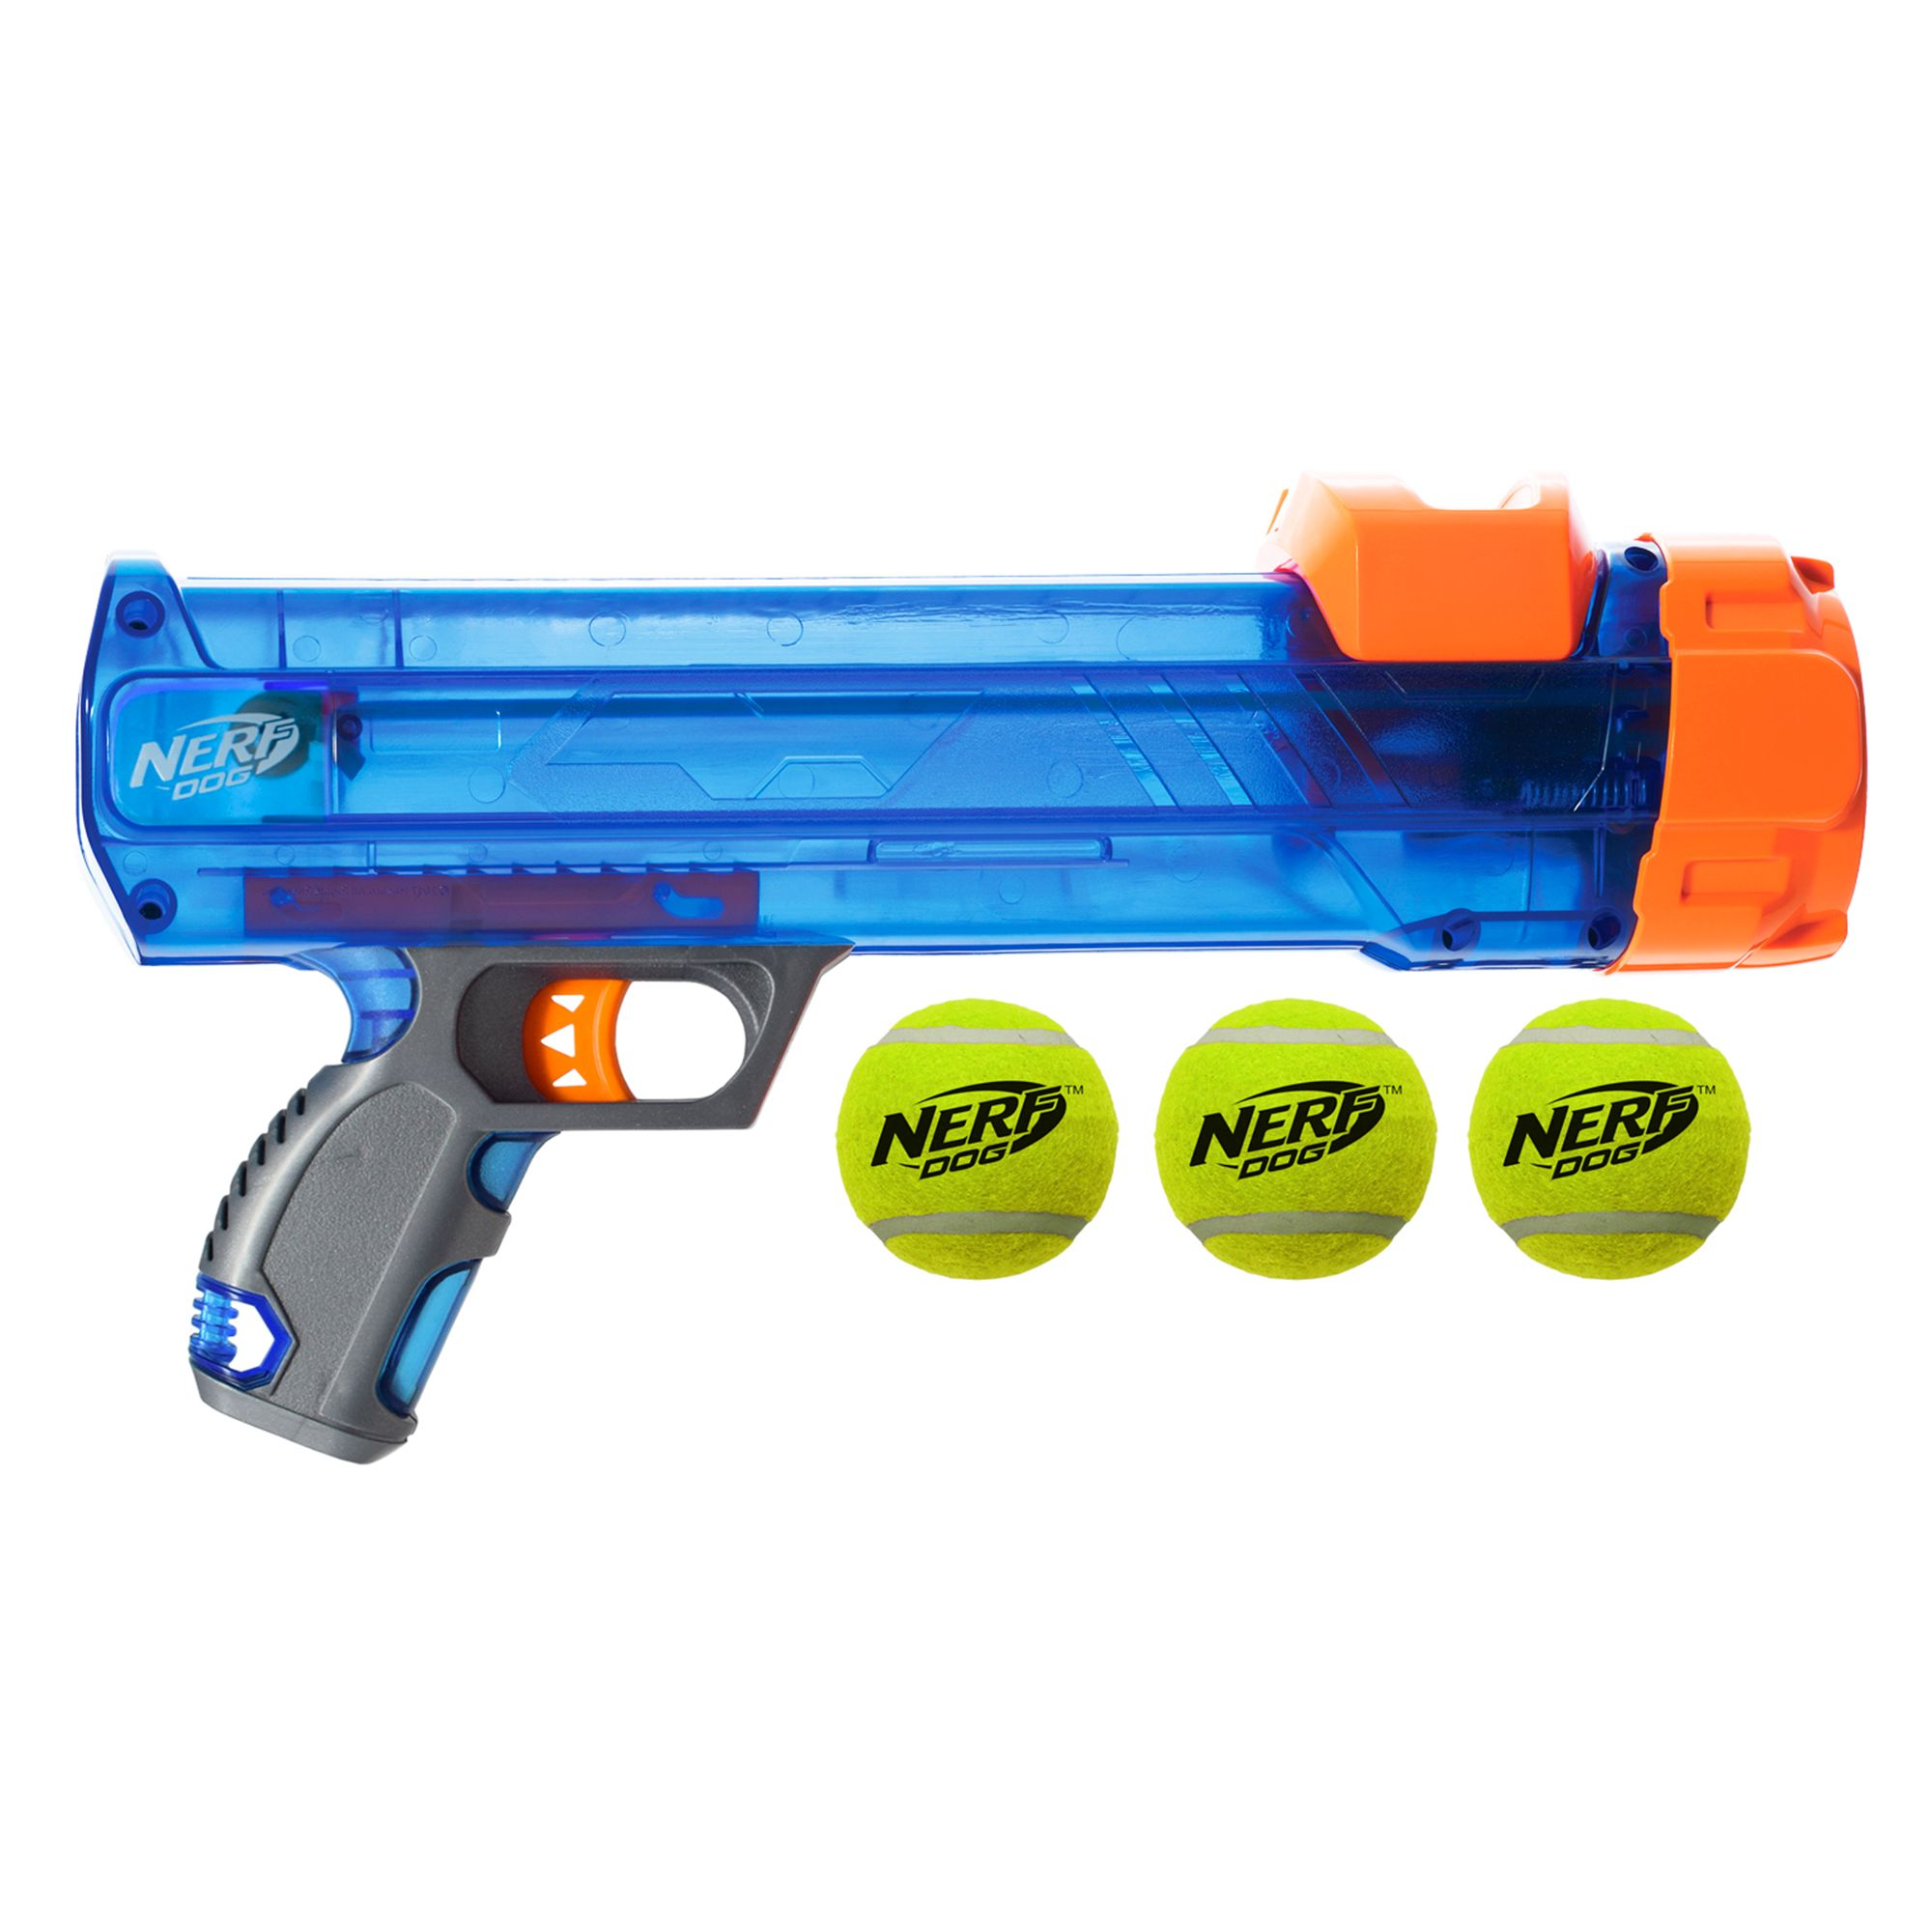 Launches up to 50 ft Great for Fetch Nerf Dog Tennis Ball Blaster Dog Toy Assorted Sizes Hands-Free Reload Balls Included